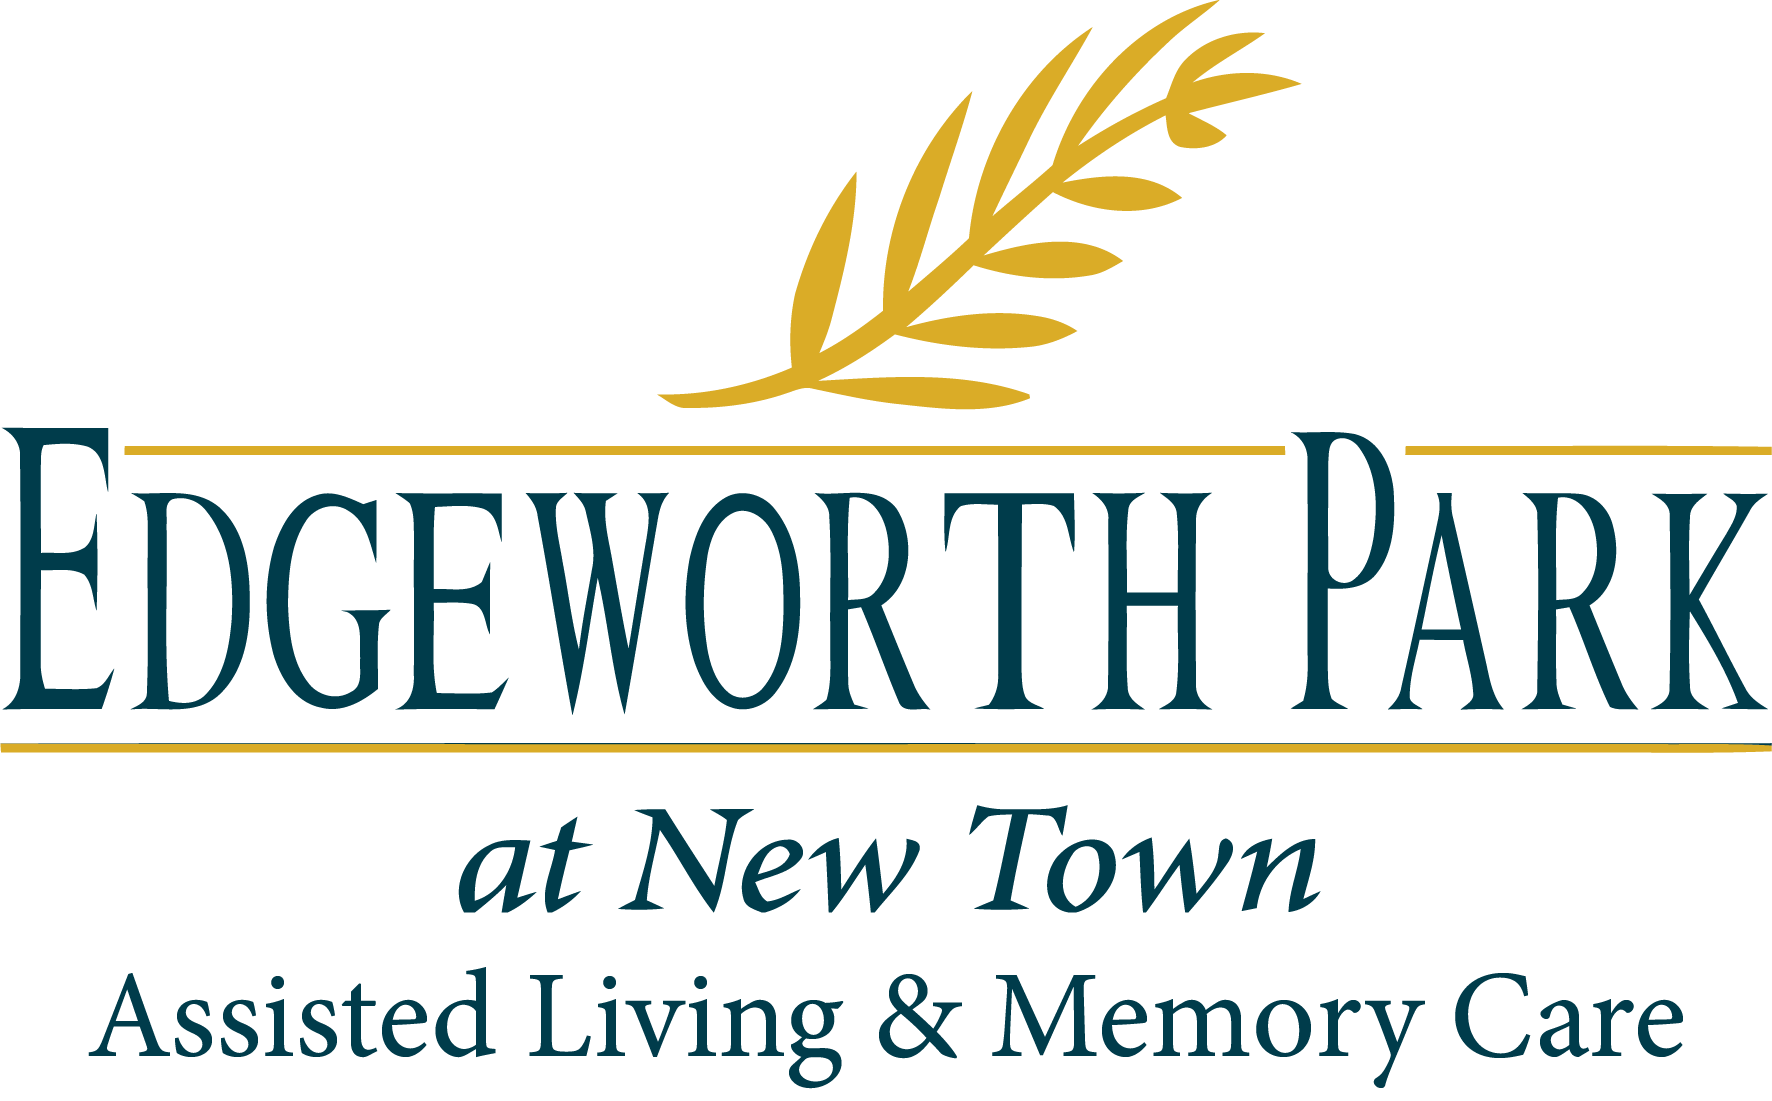 6- Edgeworth Park at New Town, Memory Care (Gold)